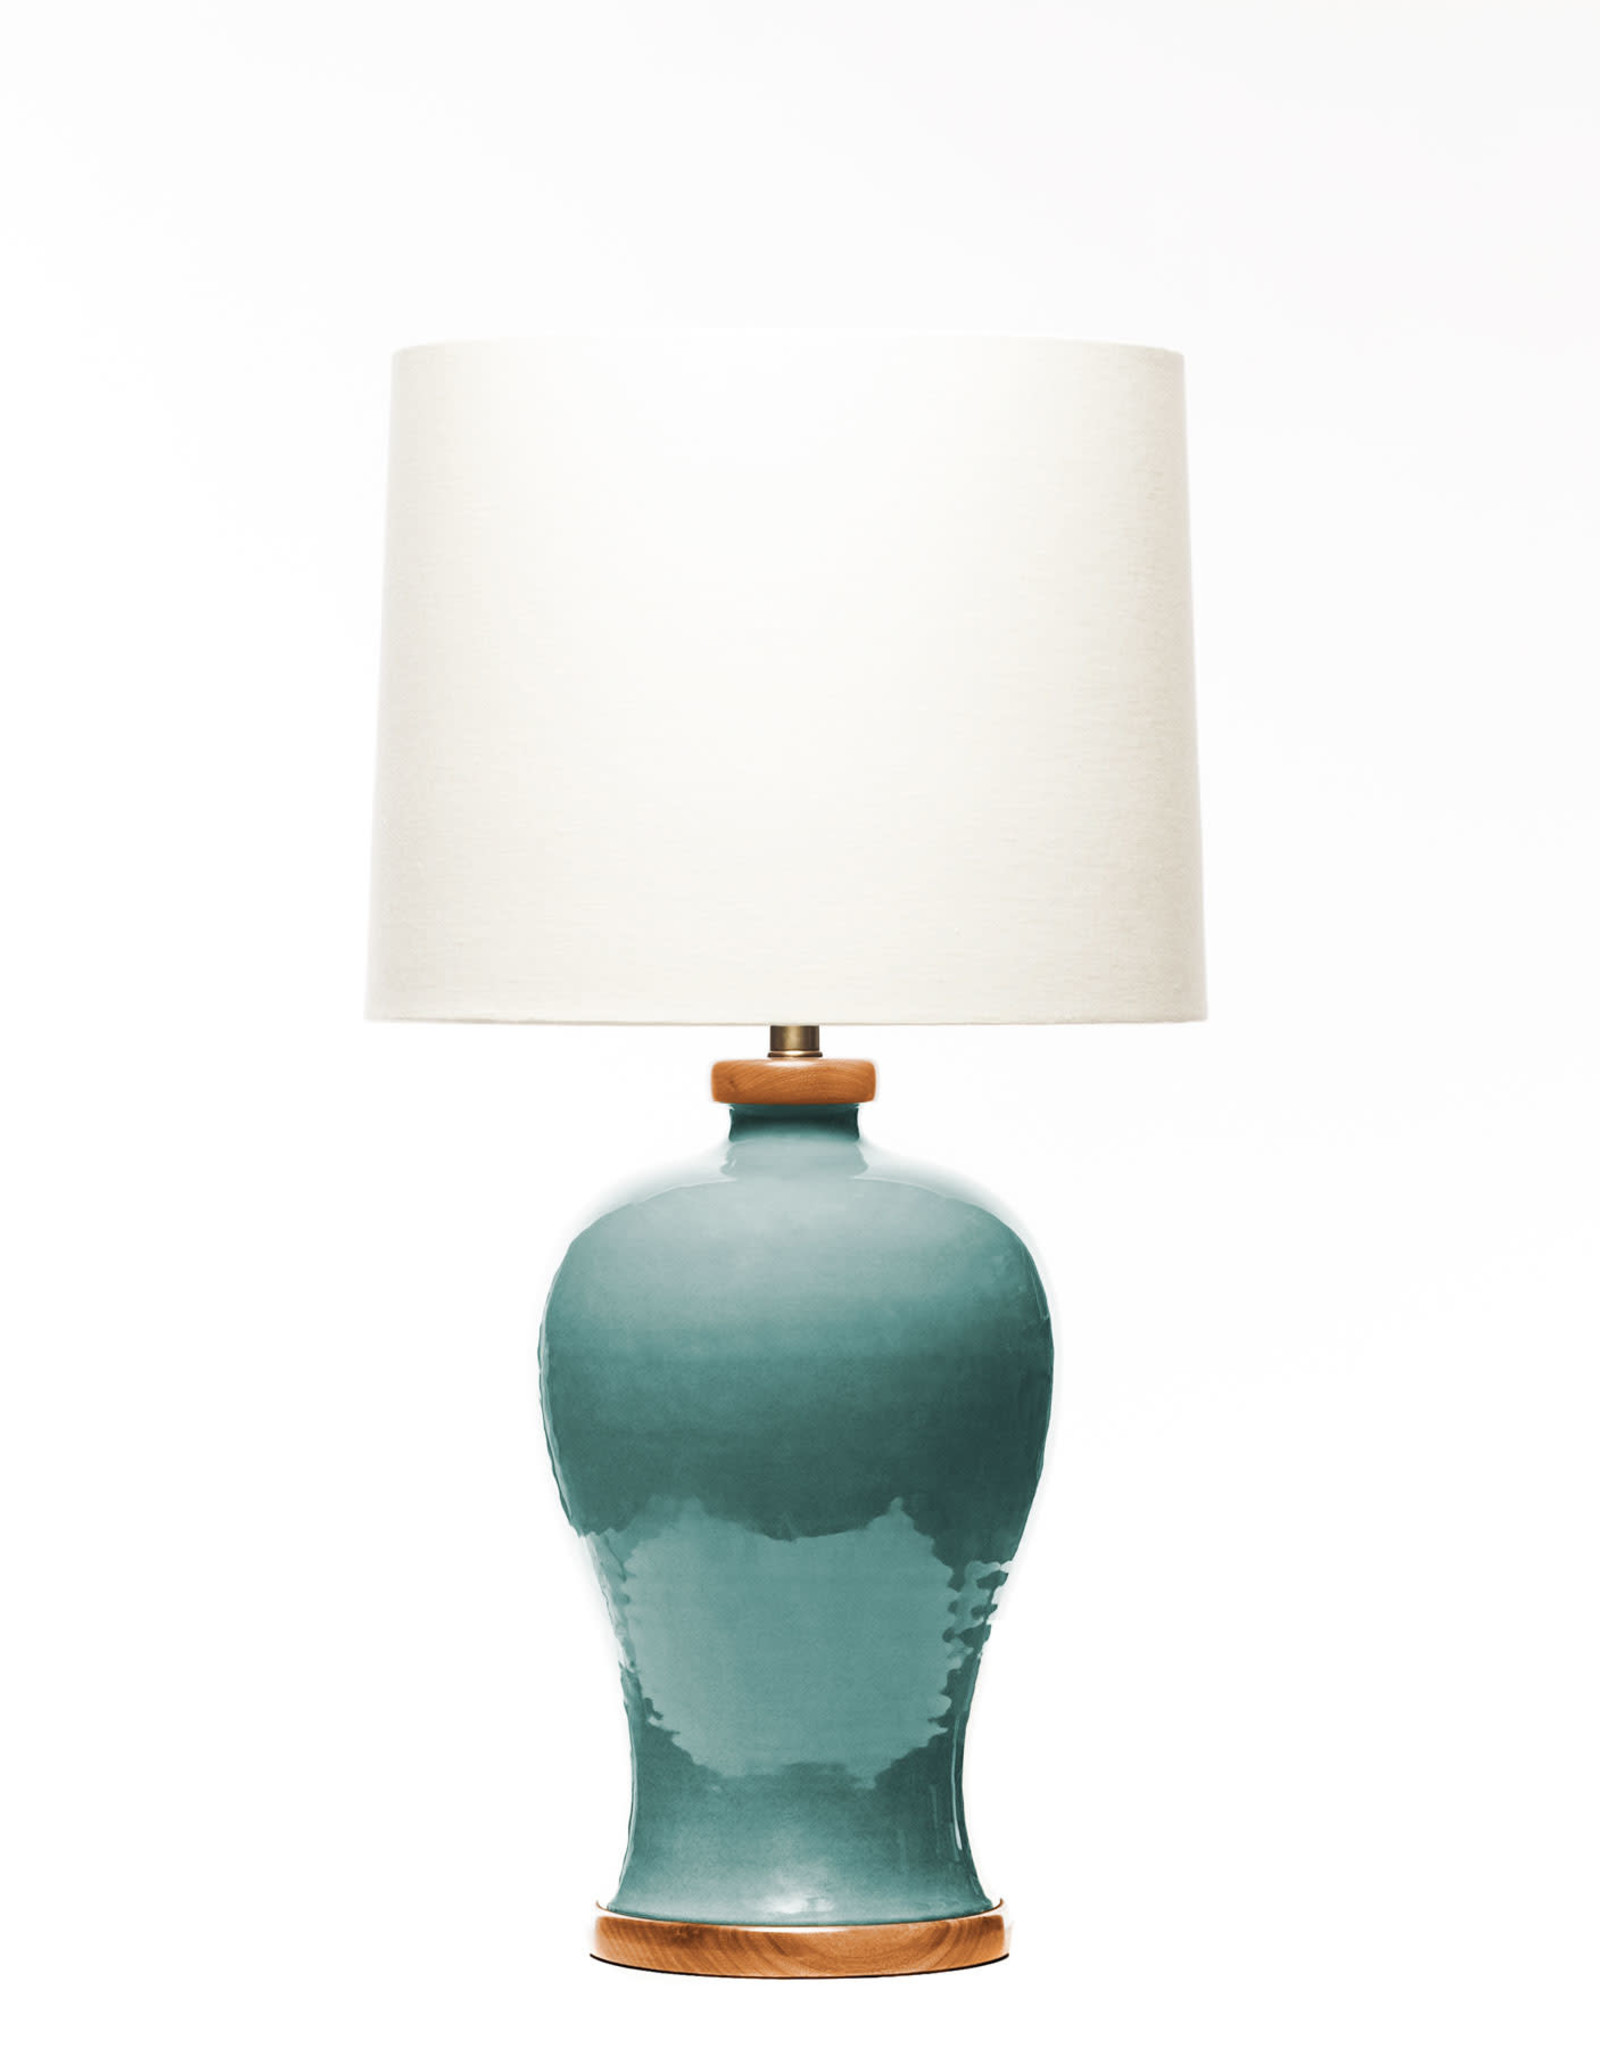 Lawrence & Scott Dashiell Table Lamp in Aquamarine with Sapele Base